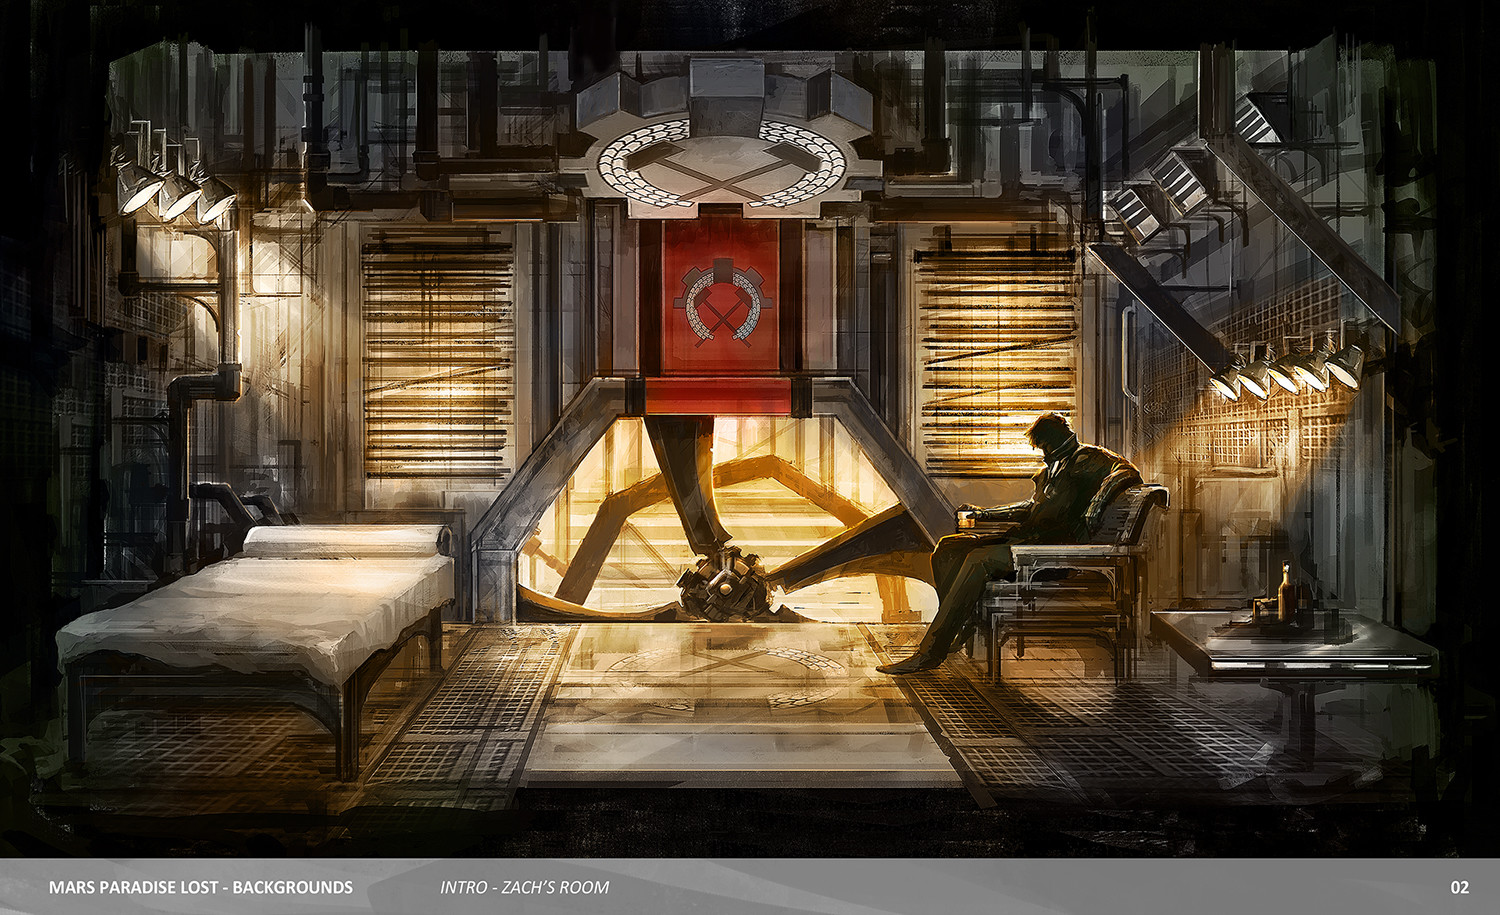 Alexandre chaudret mpl backgrounds intro chamber02